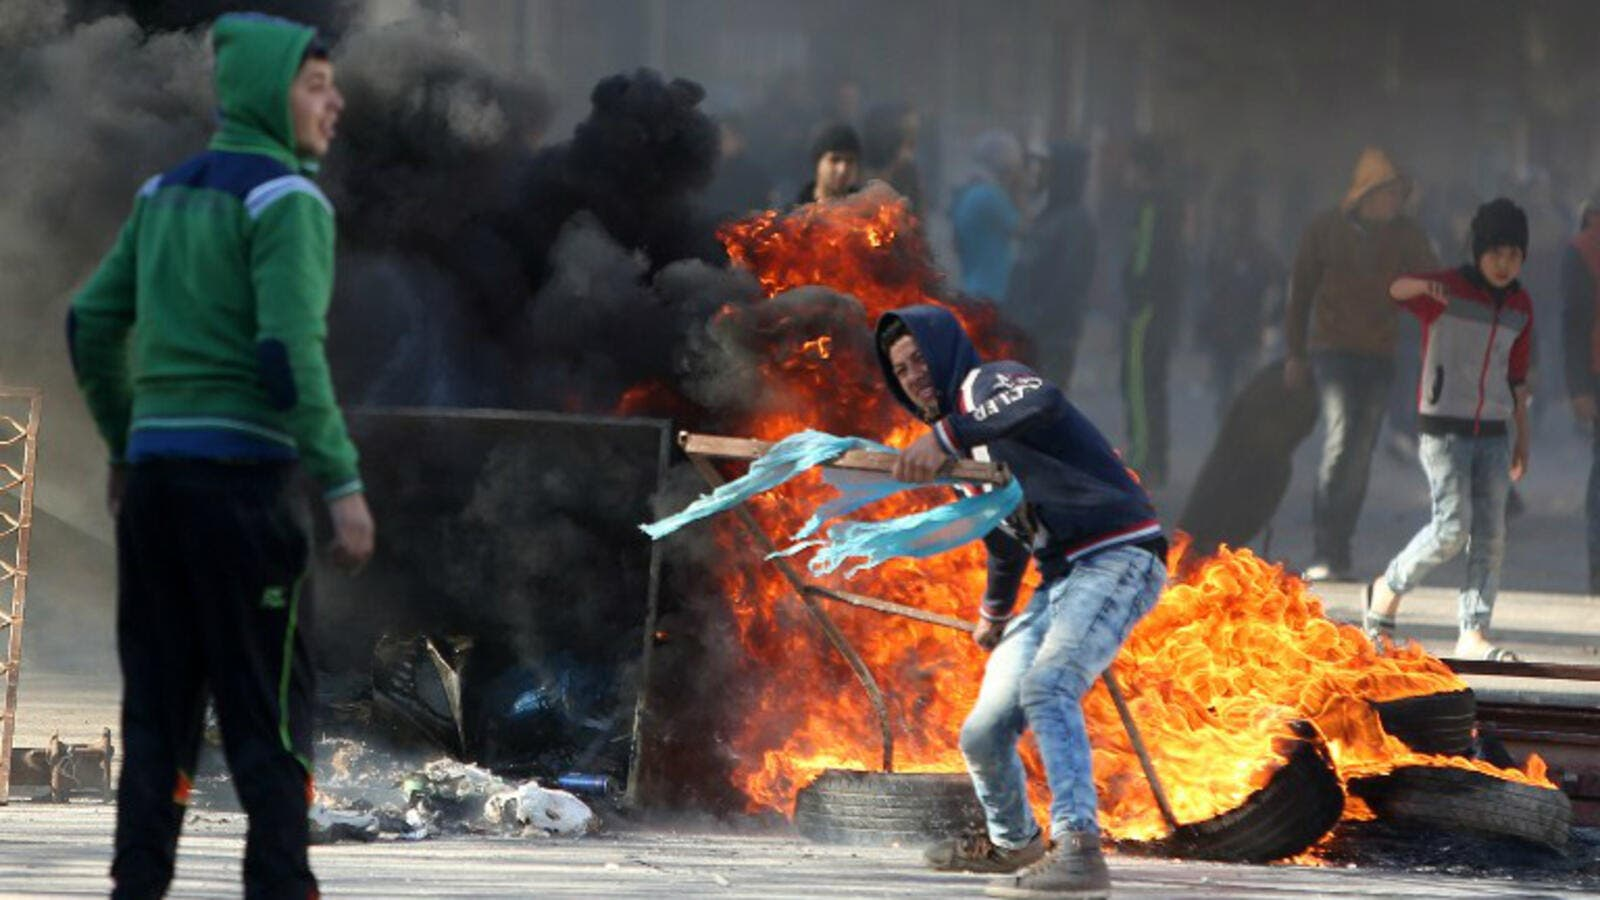 Palestinian youths clash with Israeli security forces in Qabatiya, a town near Jenin. (AFP/File)